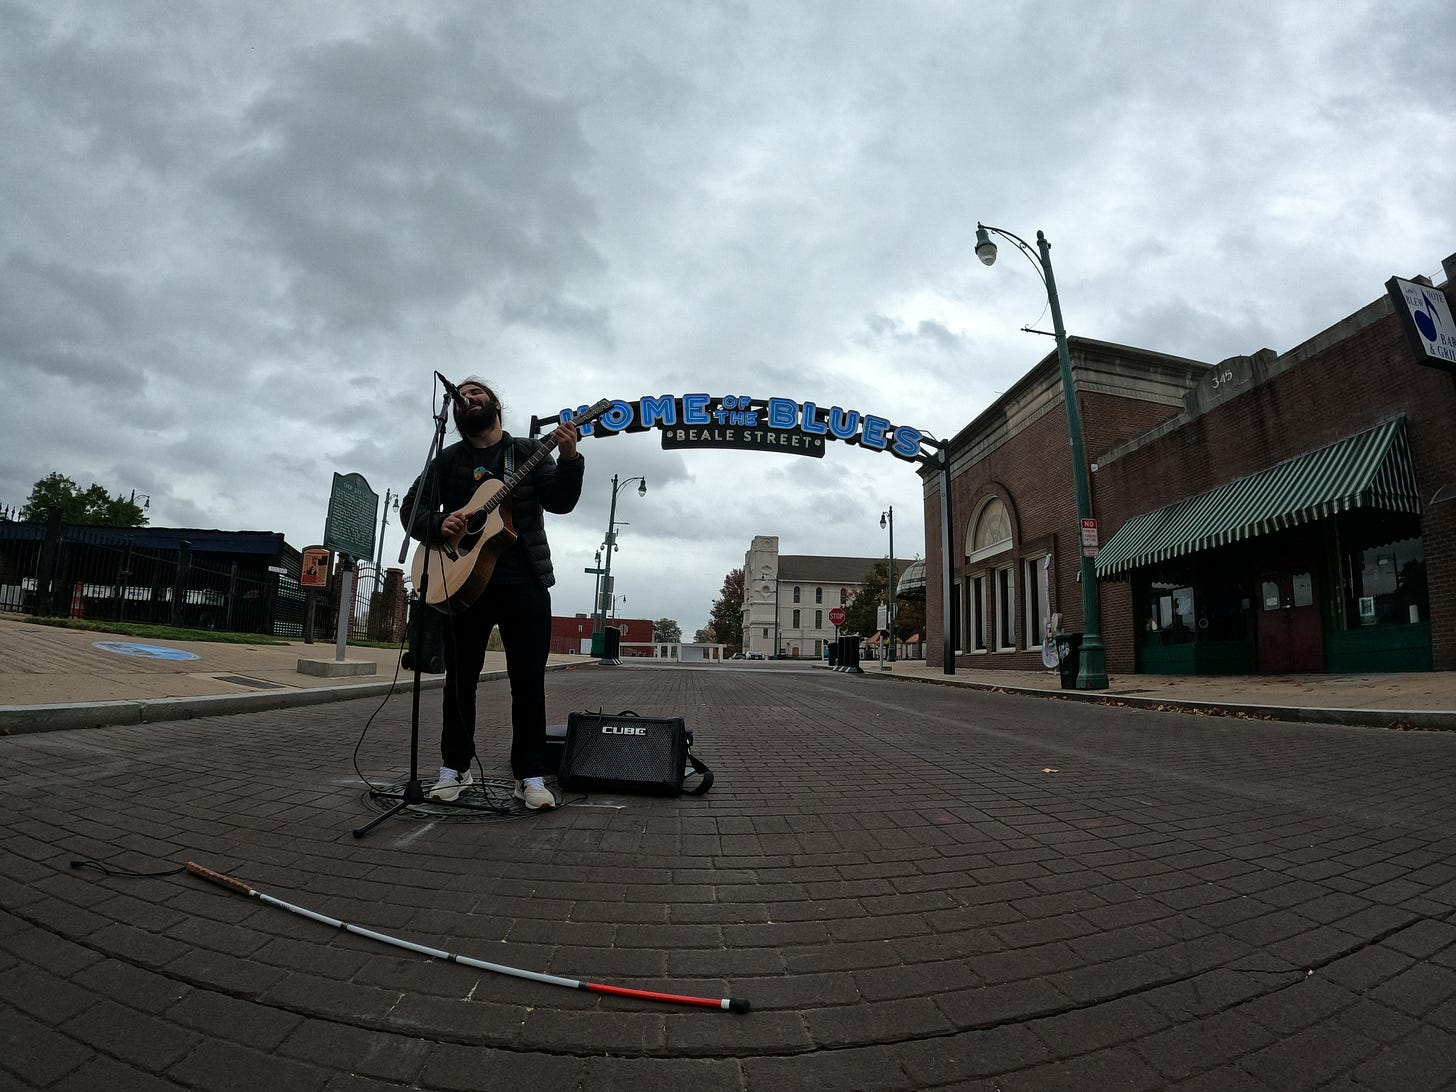 Anthony live streaming in the middle of the road on Beale Street in Memphis, TN